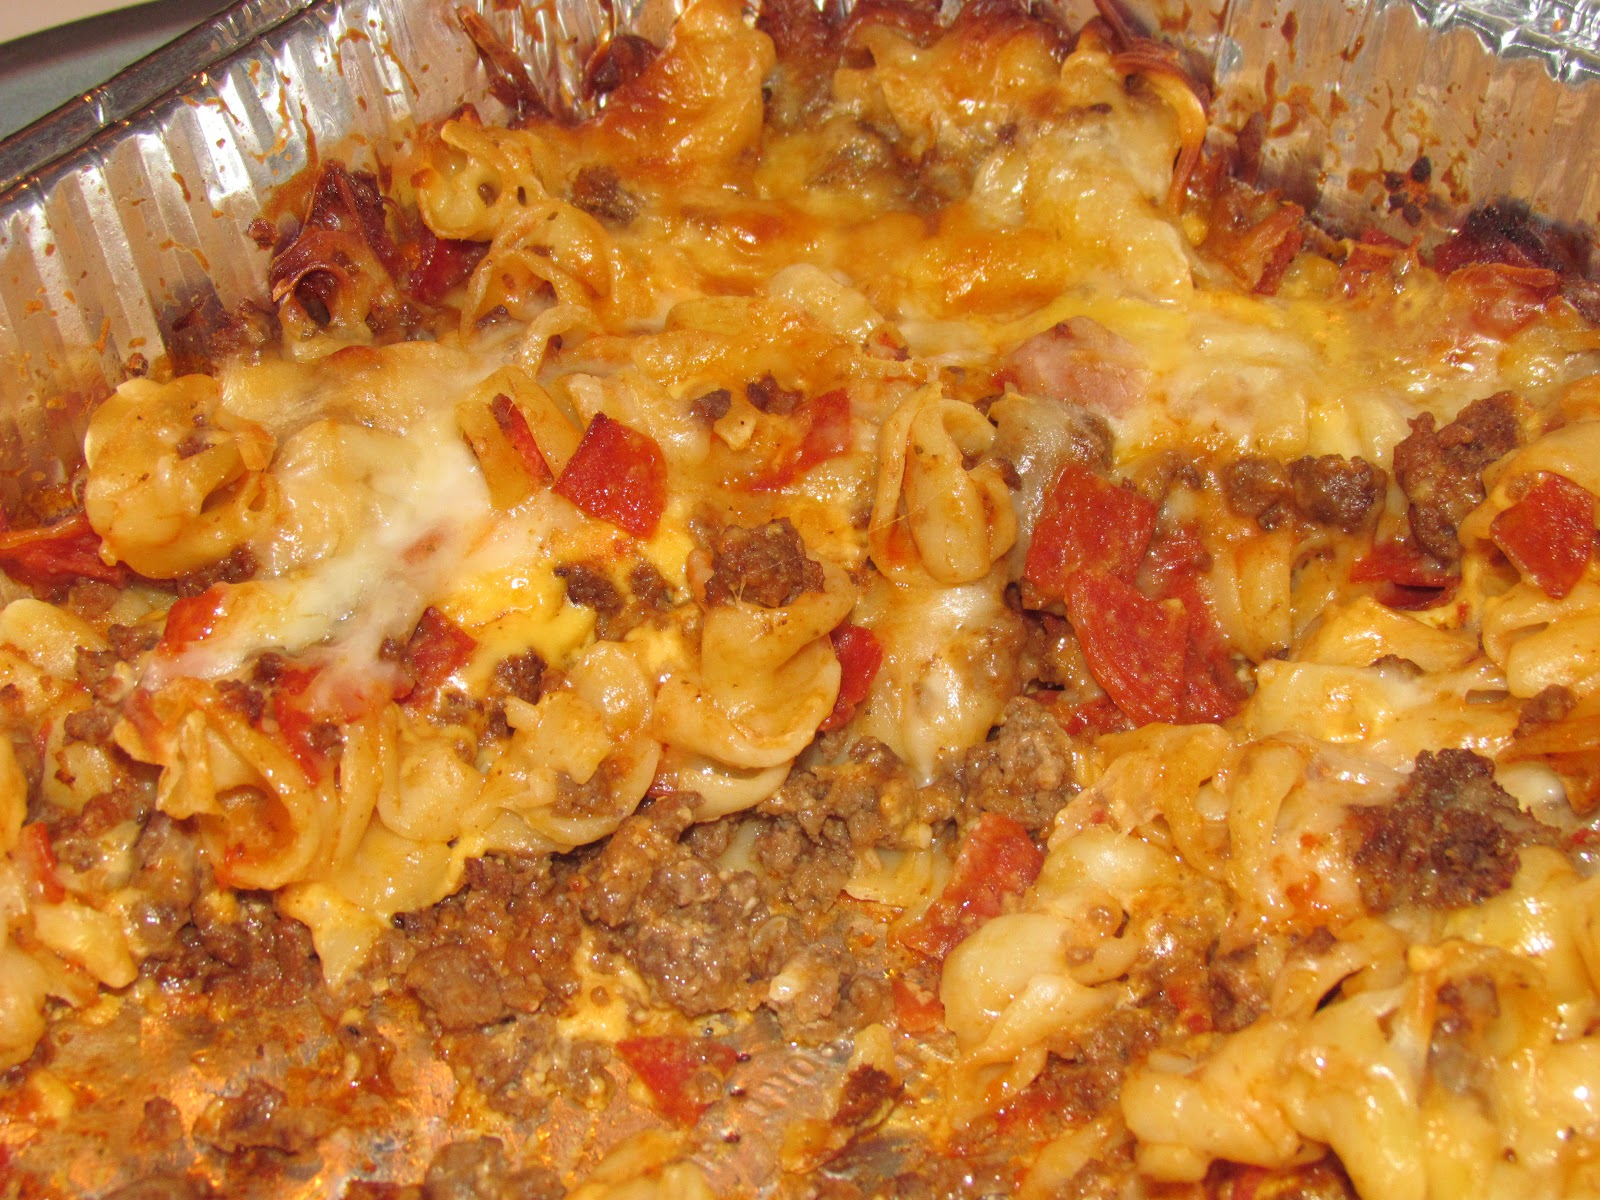 Made in our kitchen: Pizza Casserole